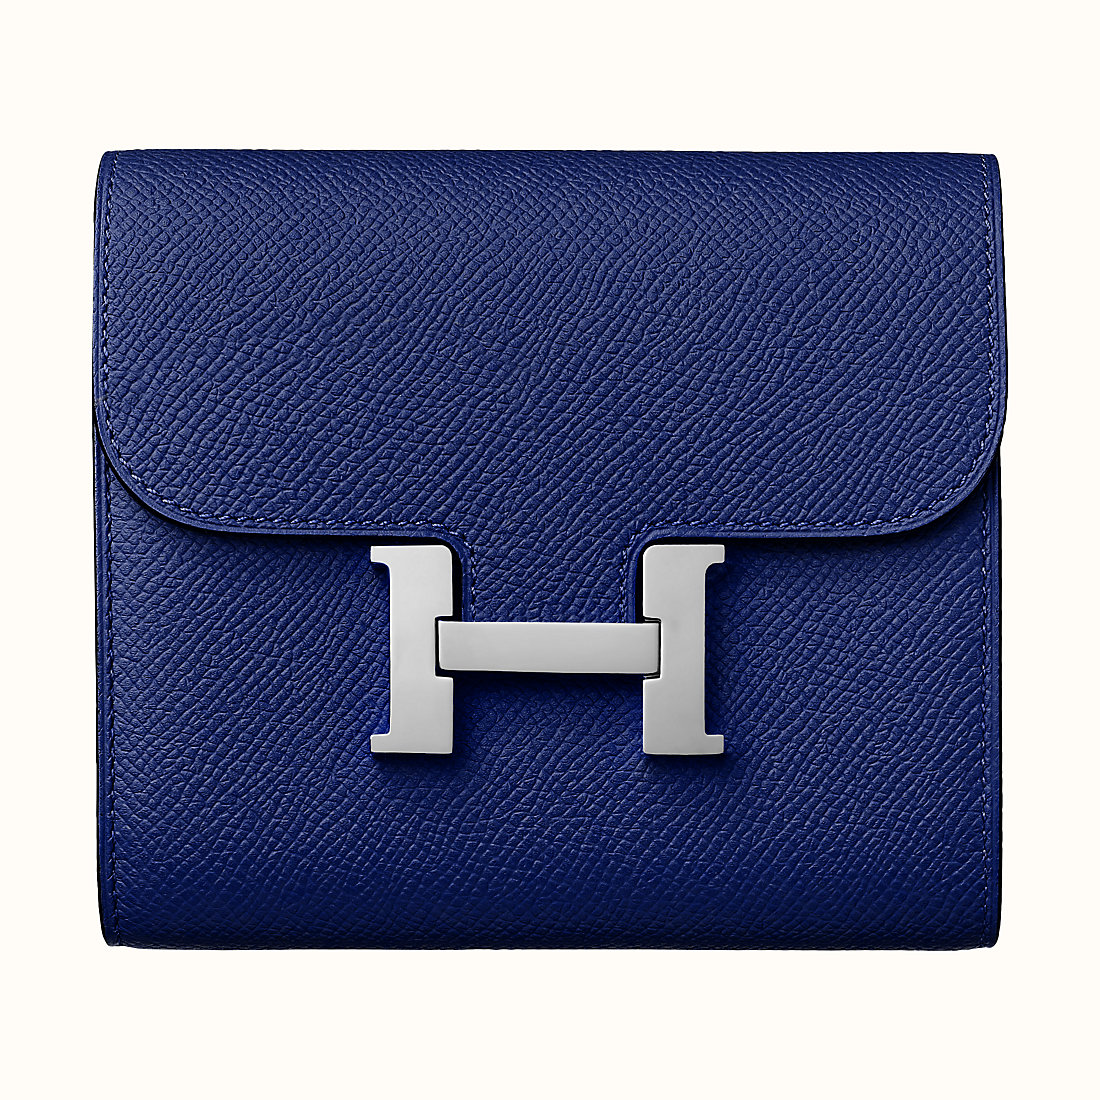 constance-compact-wallet